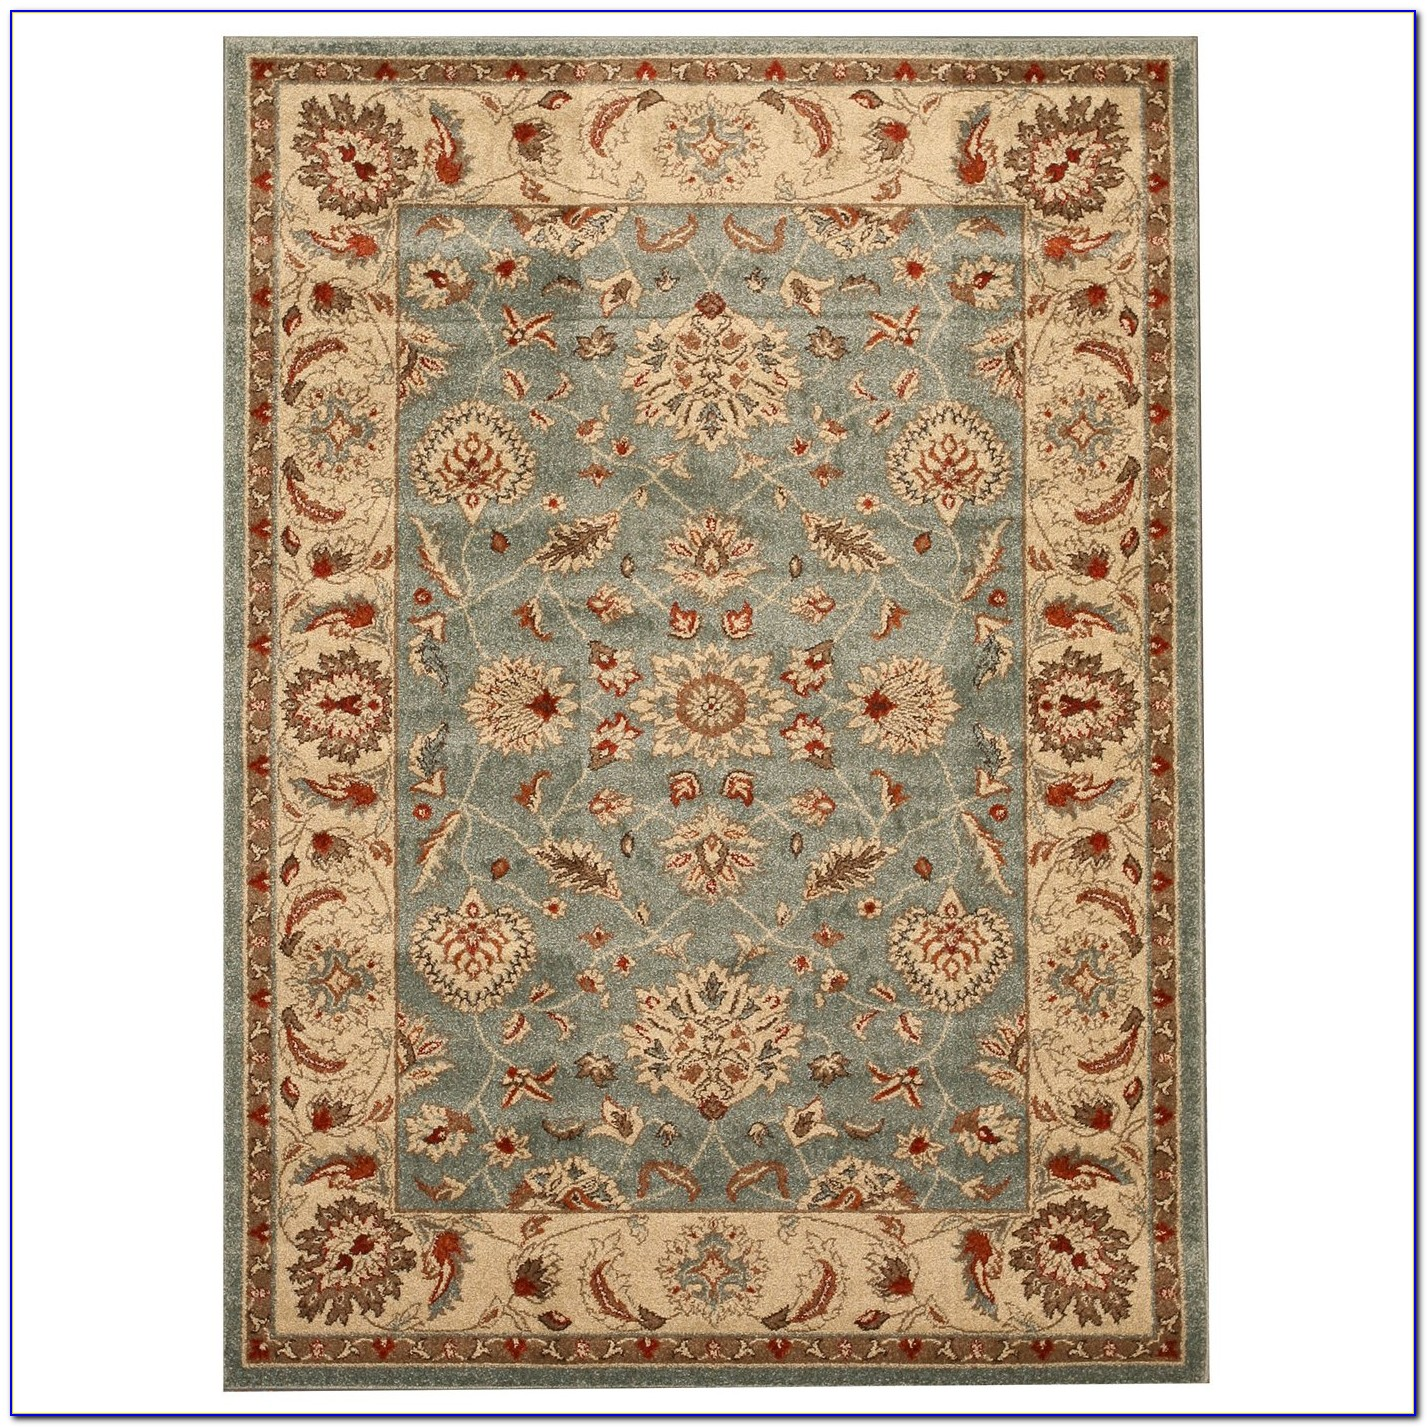 Area Rug 5 215 7 Target Rugs Home Design Ideas